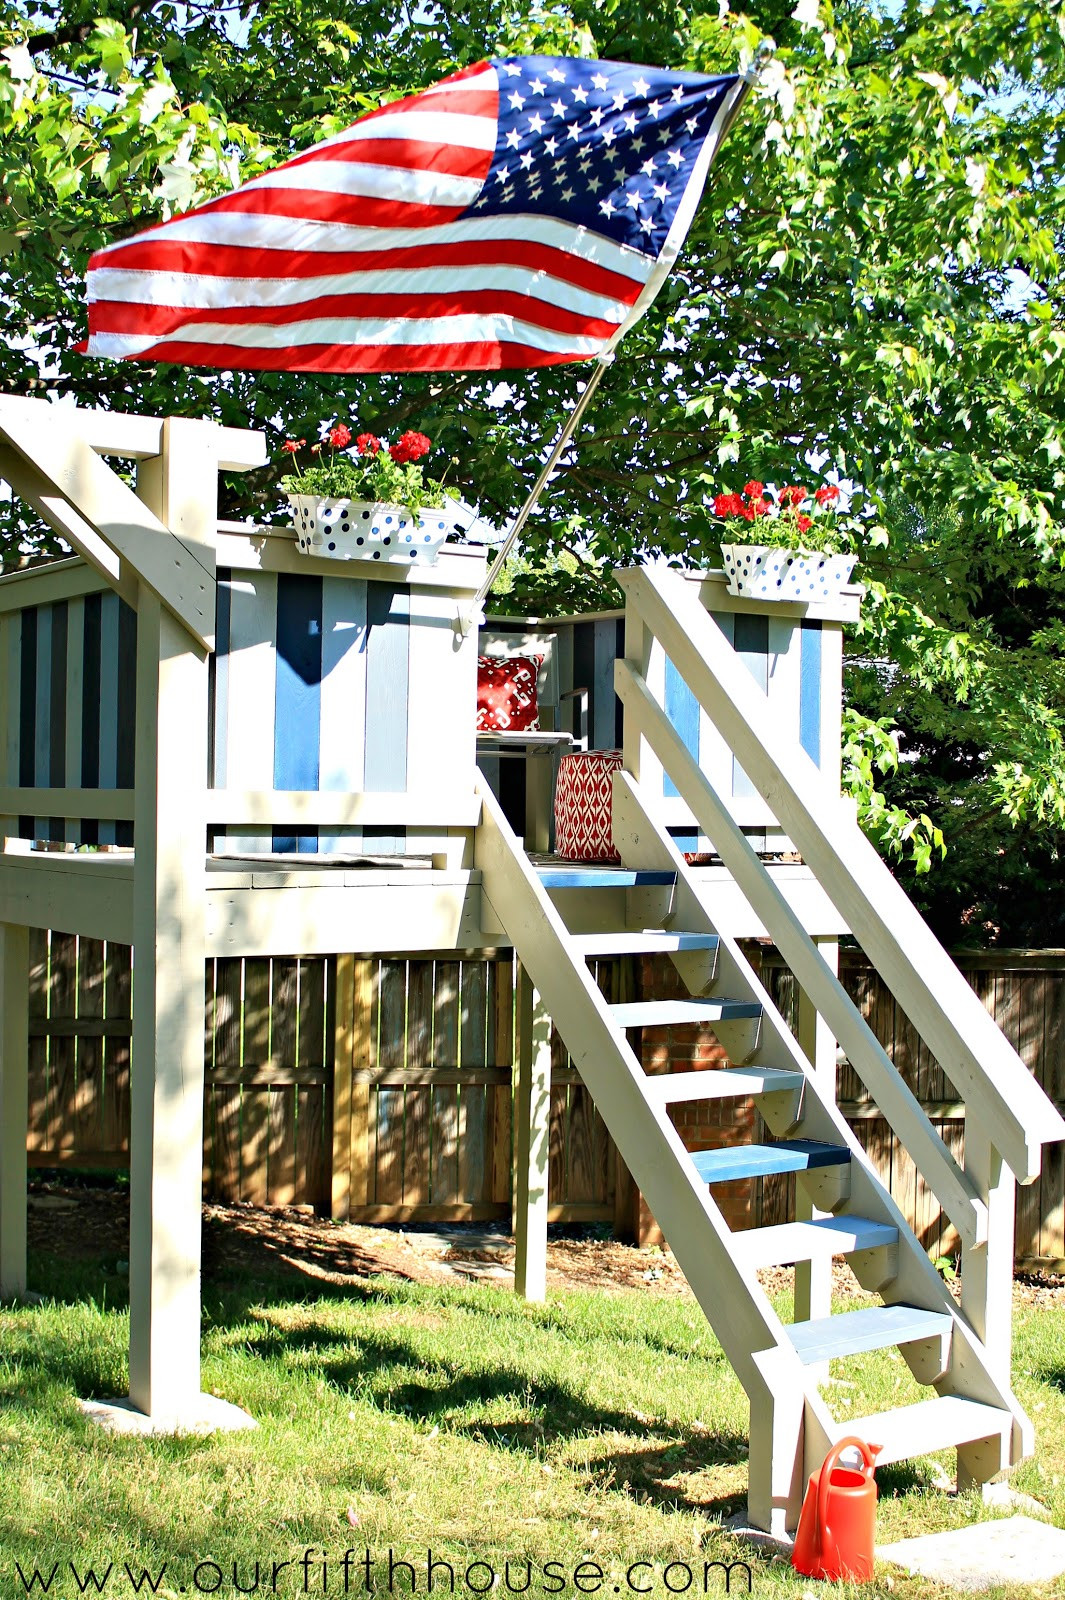 Best ideas about DIY Outdoor Playhouses . Save or Pin DIY Swing Set & Playhouse Our Fifth House Now.